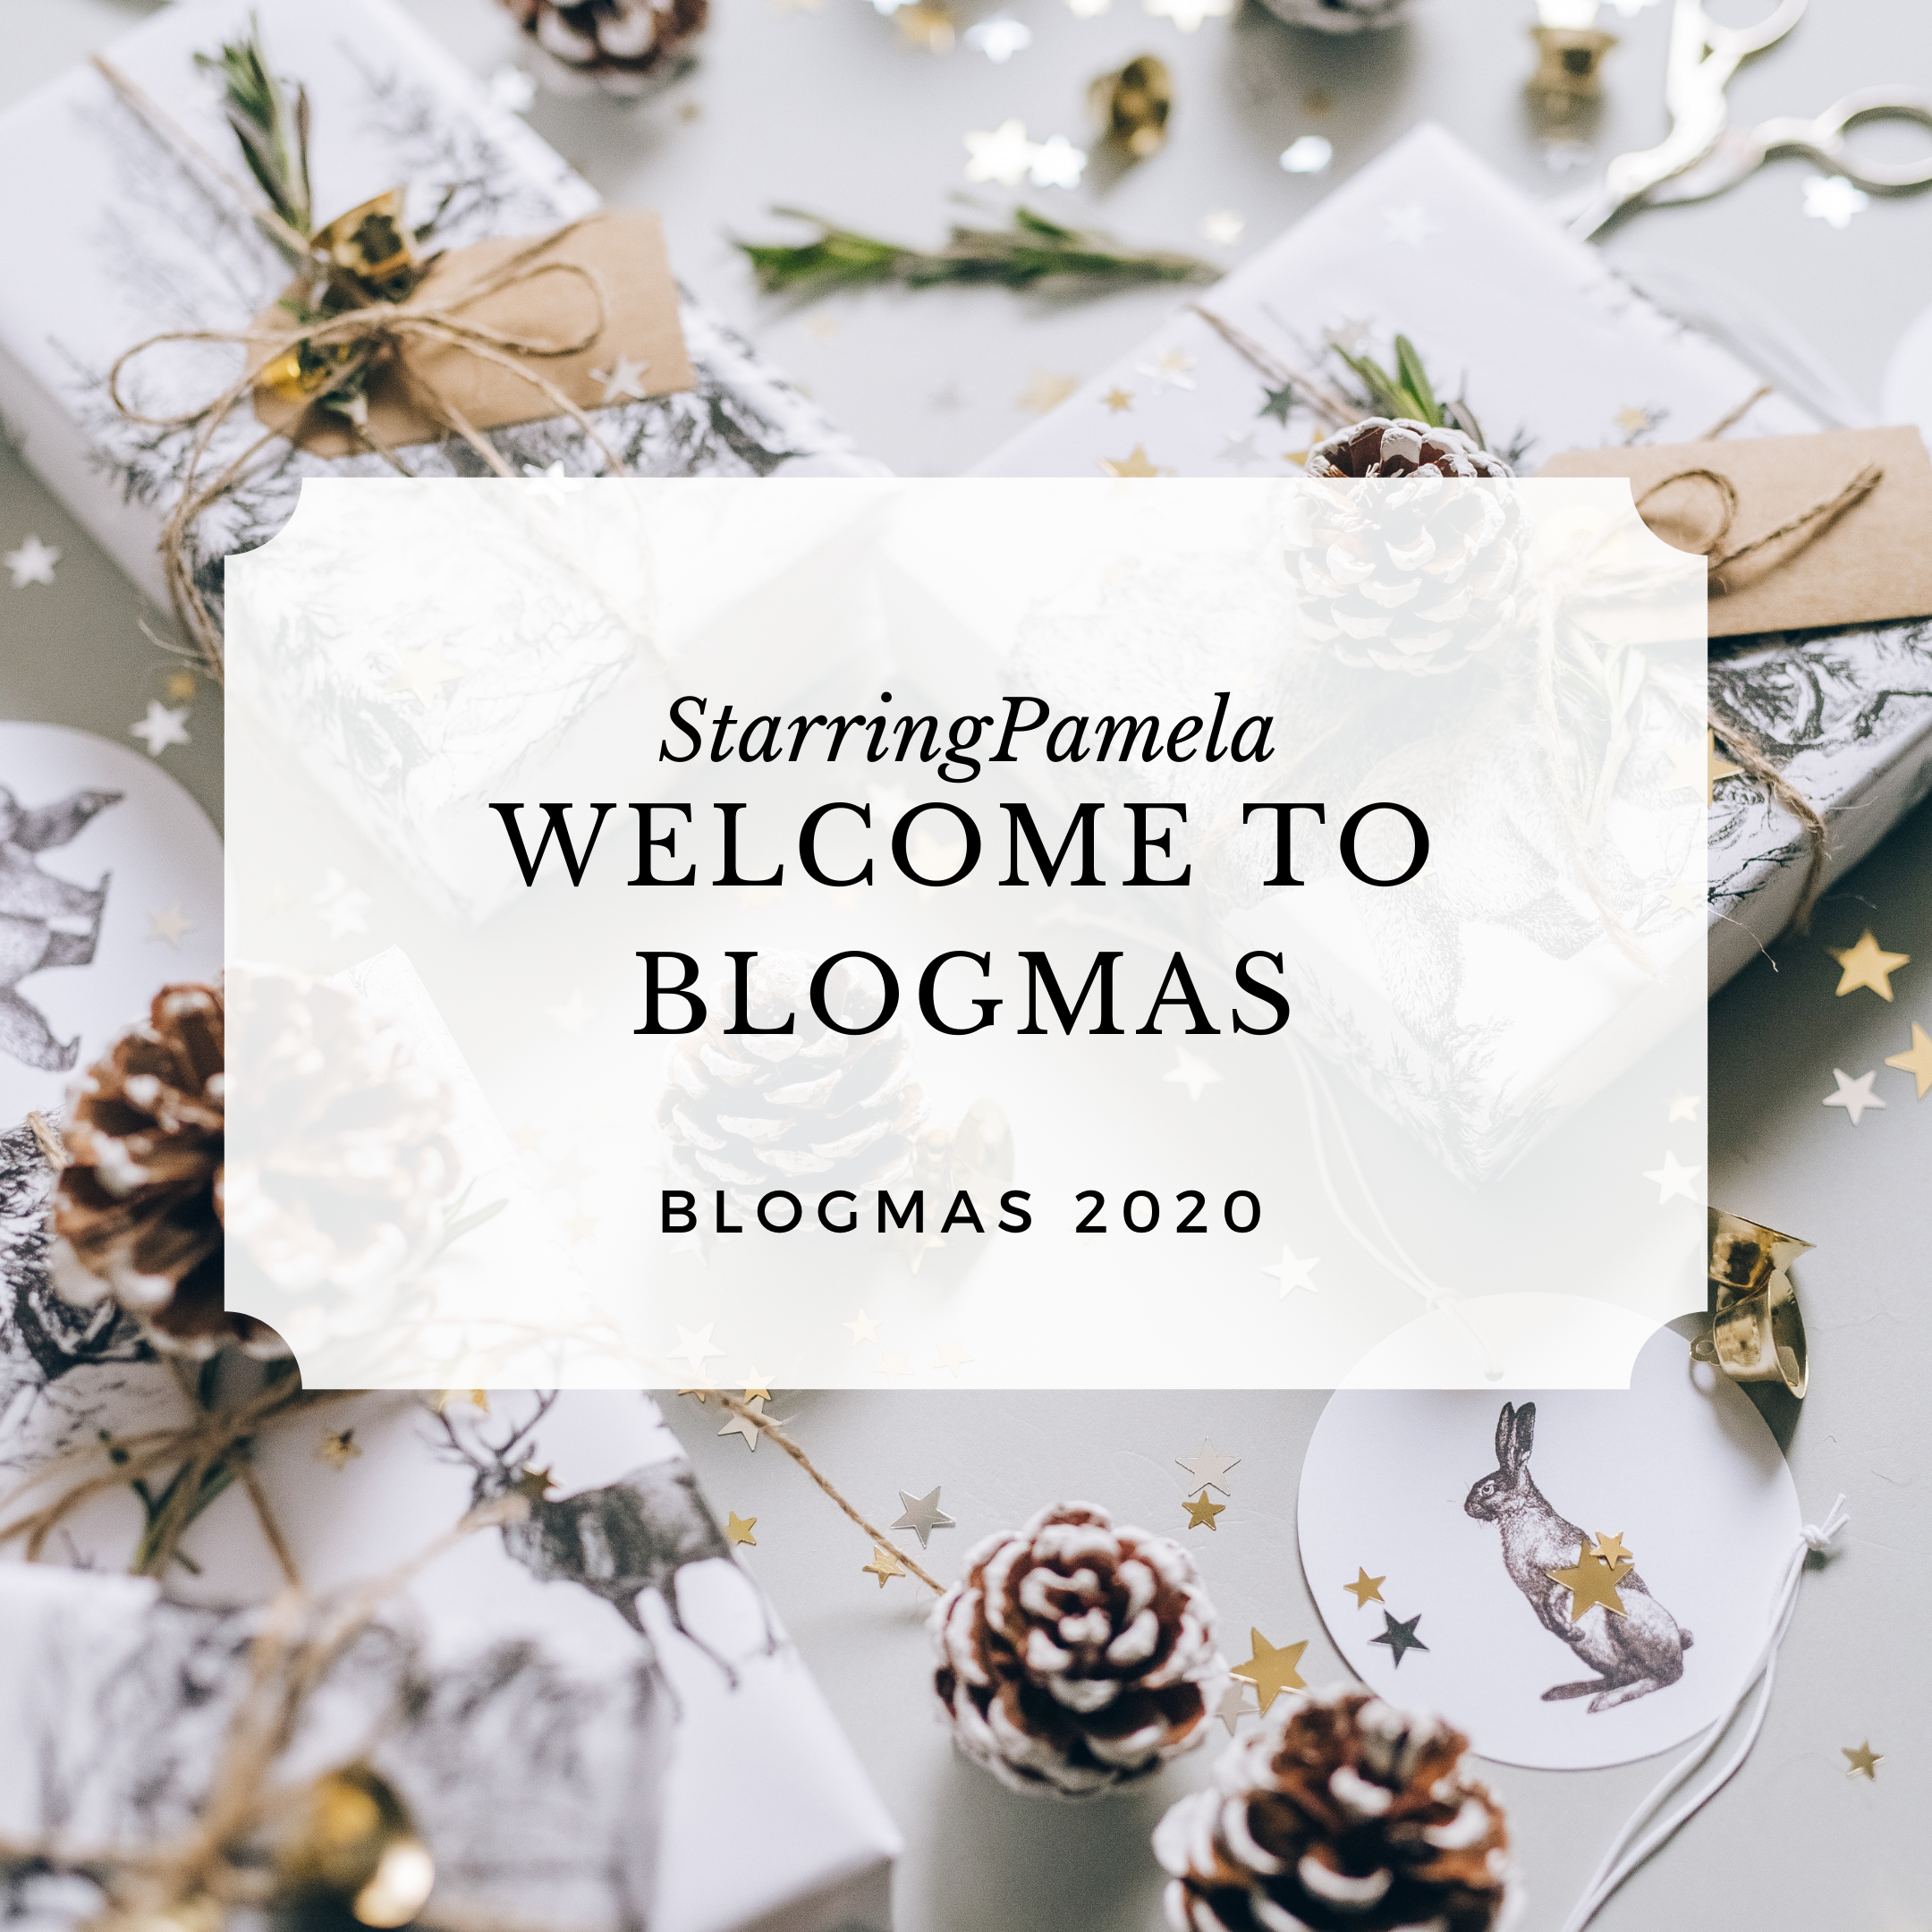 welcome to blogmas featured image